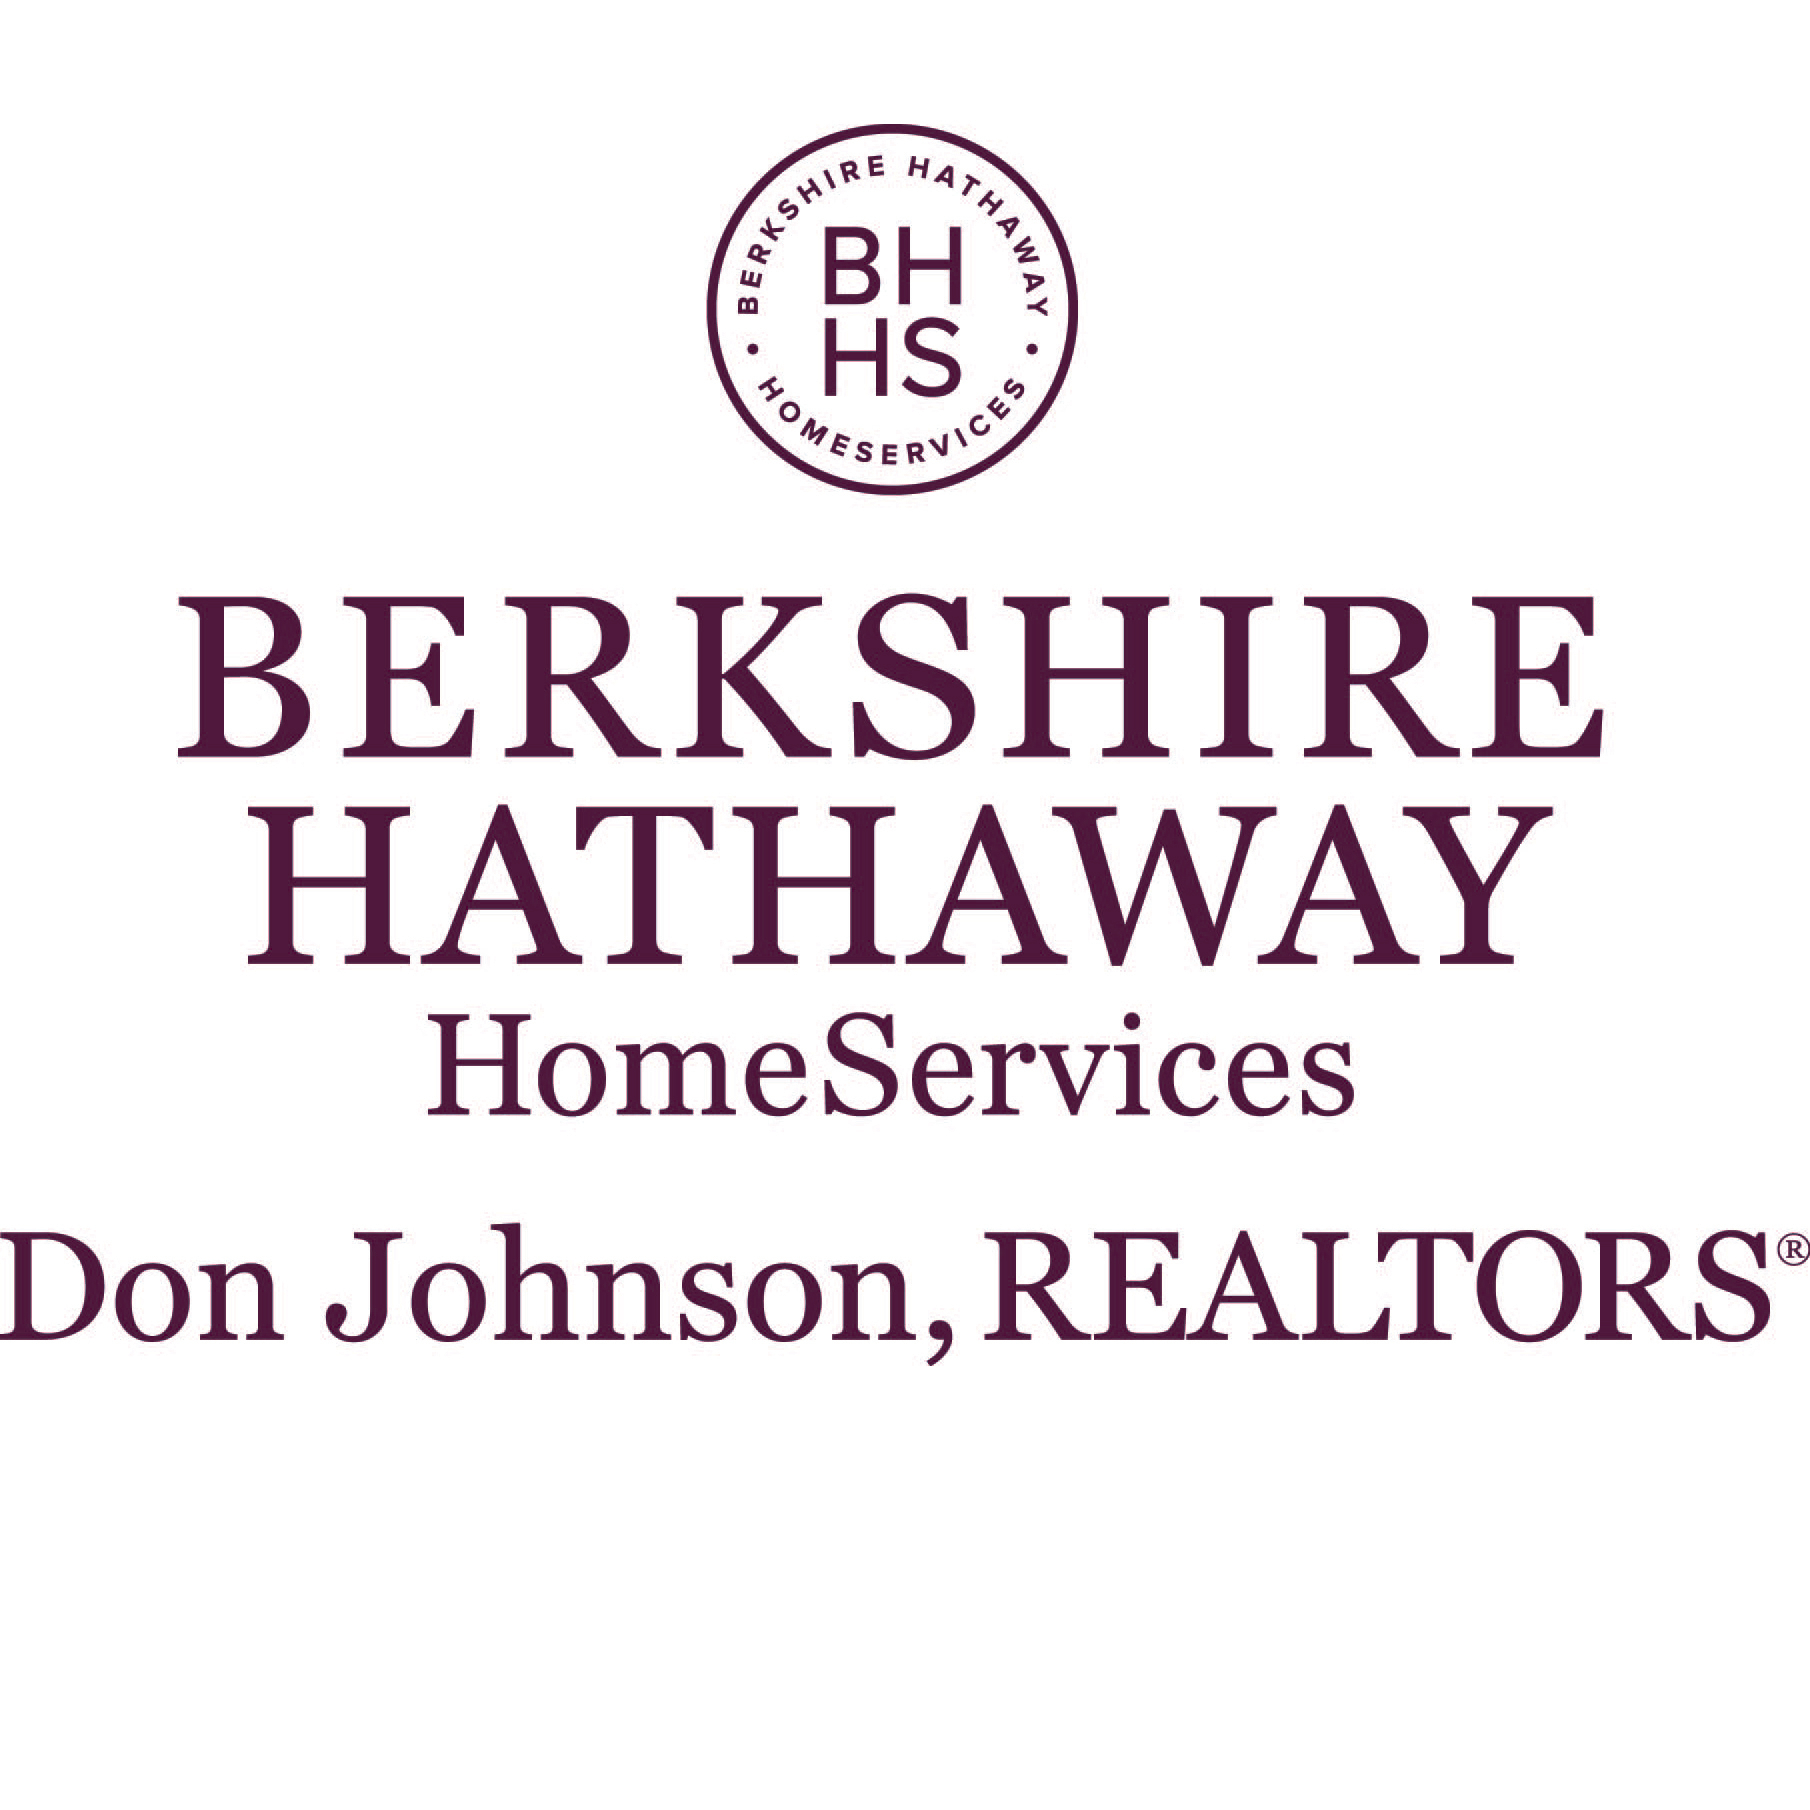 Berkshire Hathaway HomeServices Don Johnson Realtors